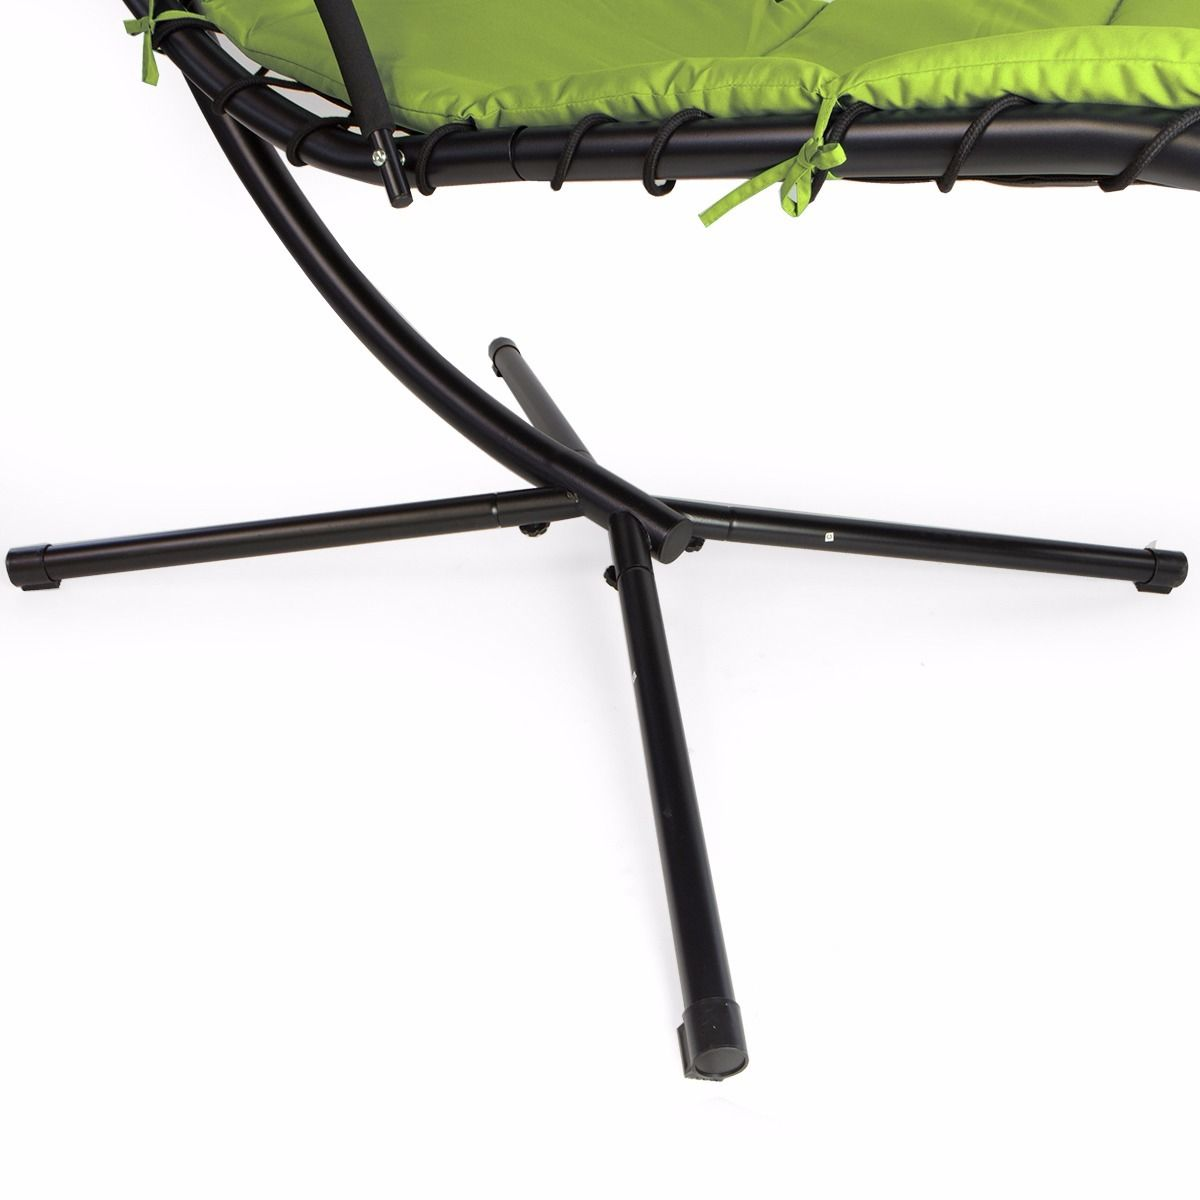 Hanging Helicopter dream Lounger Chair Stand Swing Hammock ... on Hanging Helicopter Dream Lounger Chair id=96099